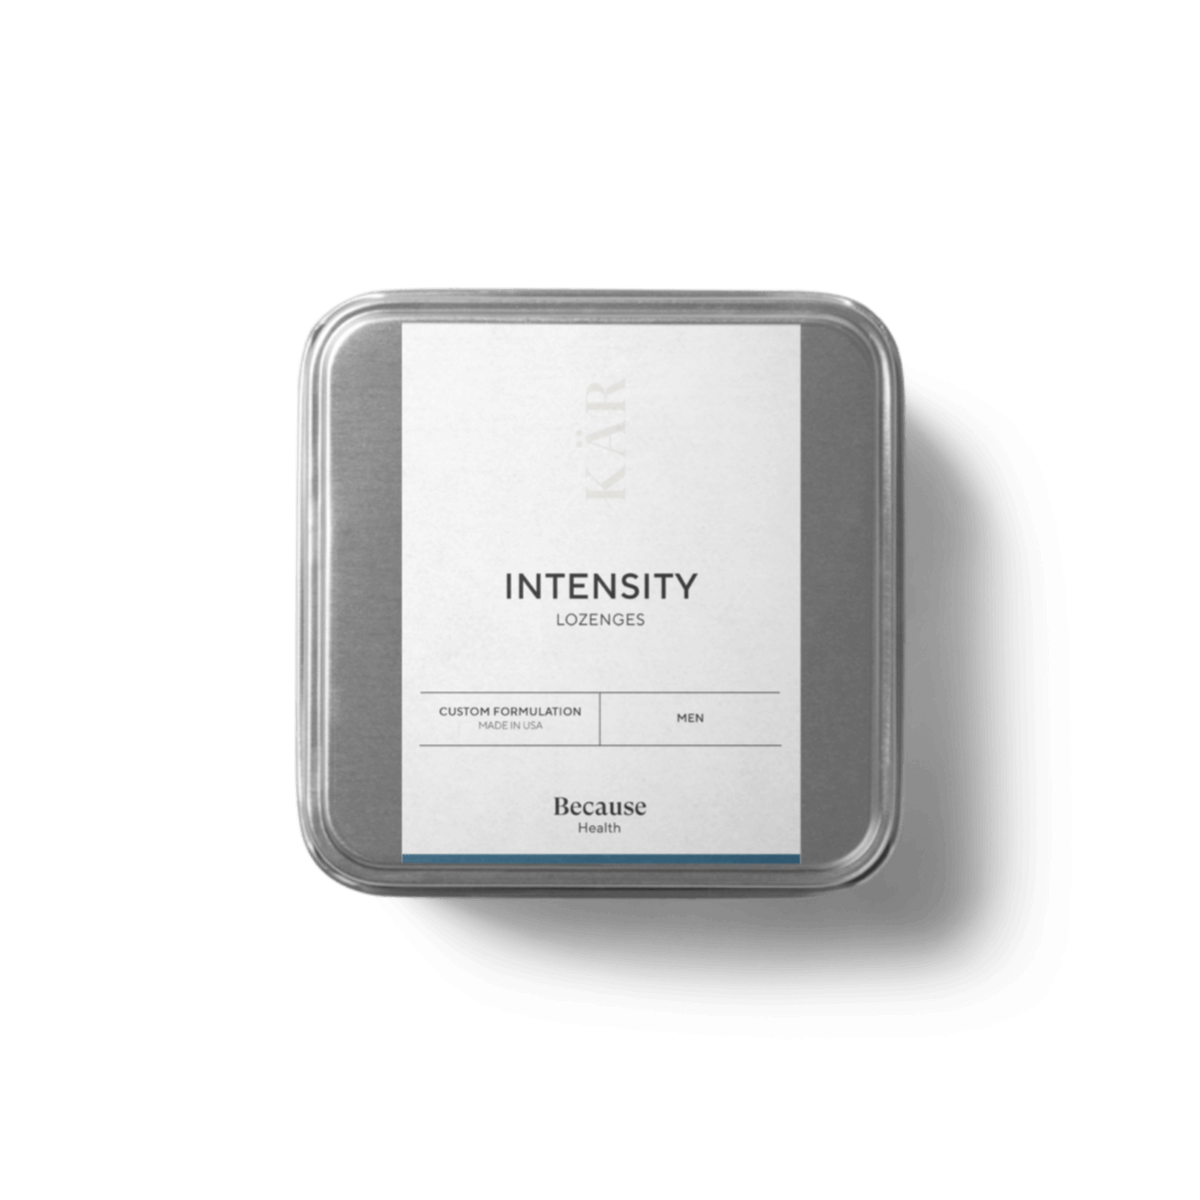 Intensity Lozenges